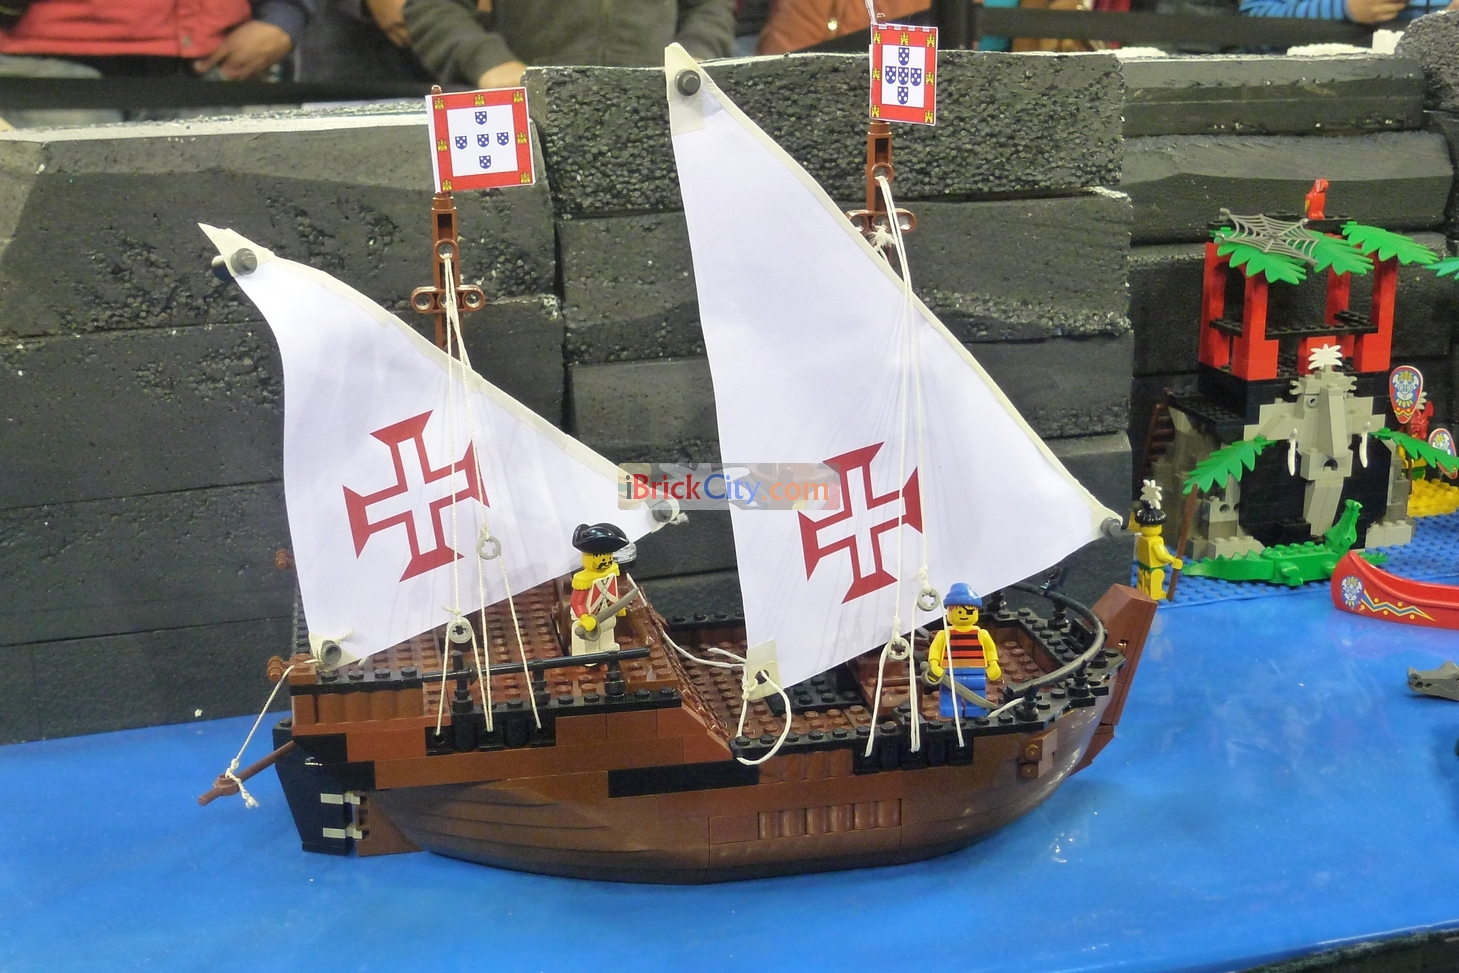 Pin lego 60032 city the lego summer wave in official images on - Ibrickcity Lego Fan Event Lisbon 2012 Pirates Nau